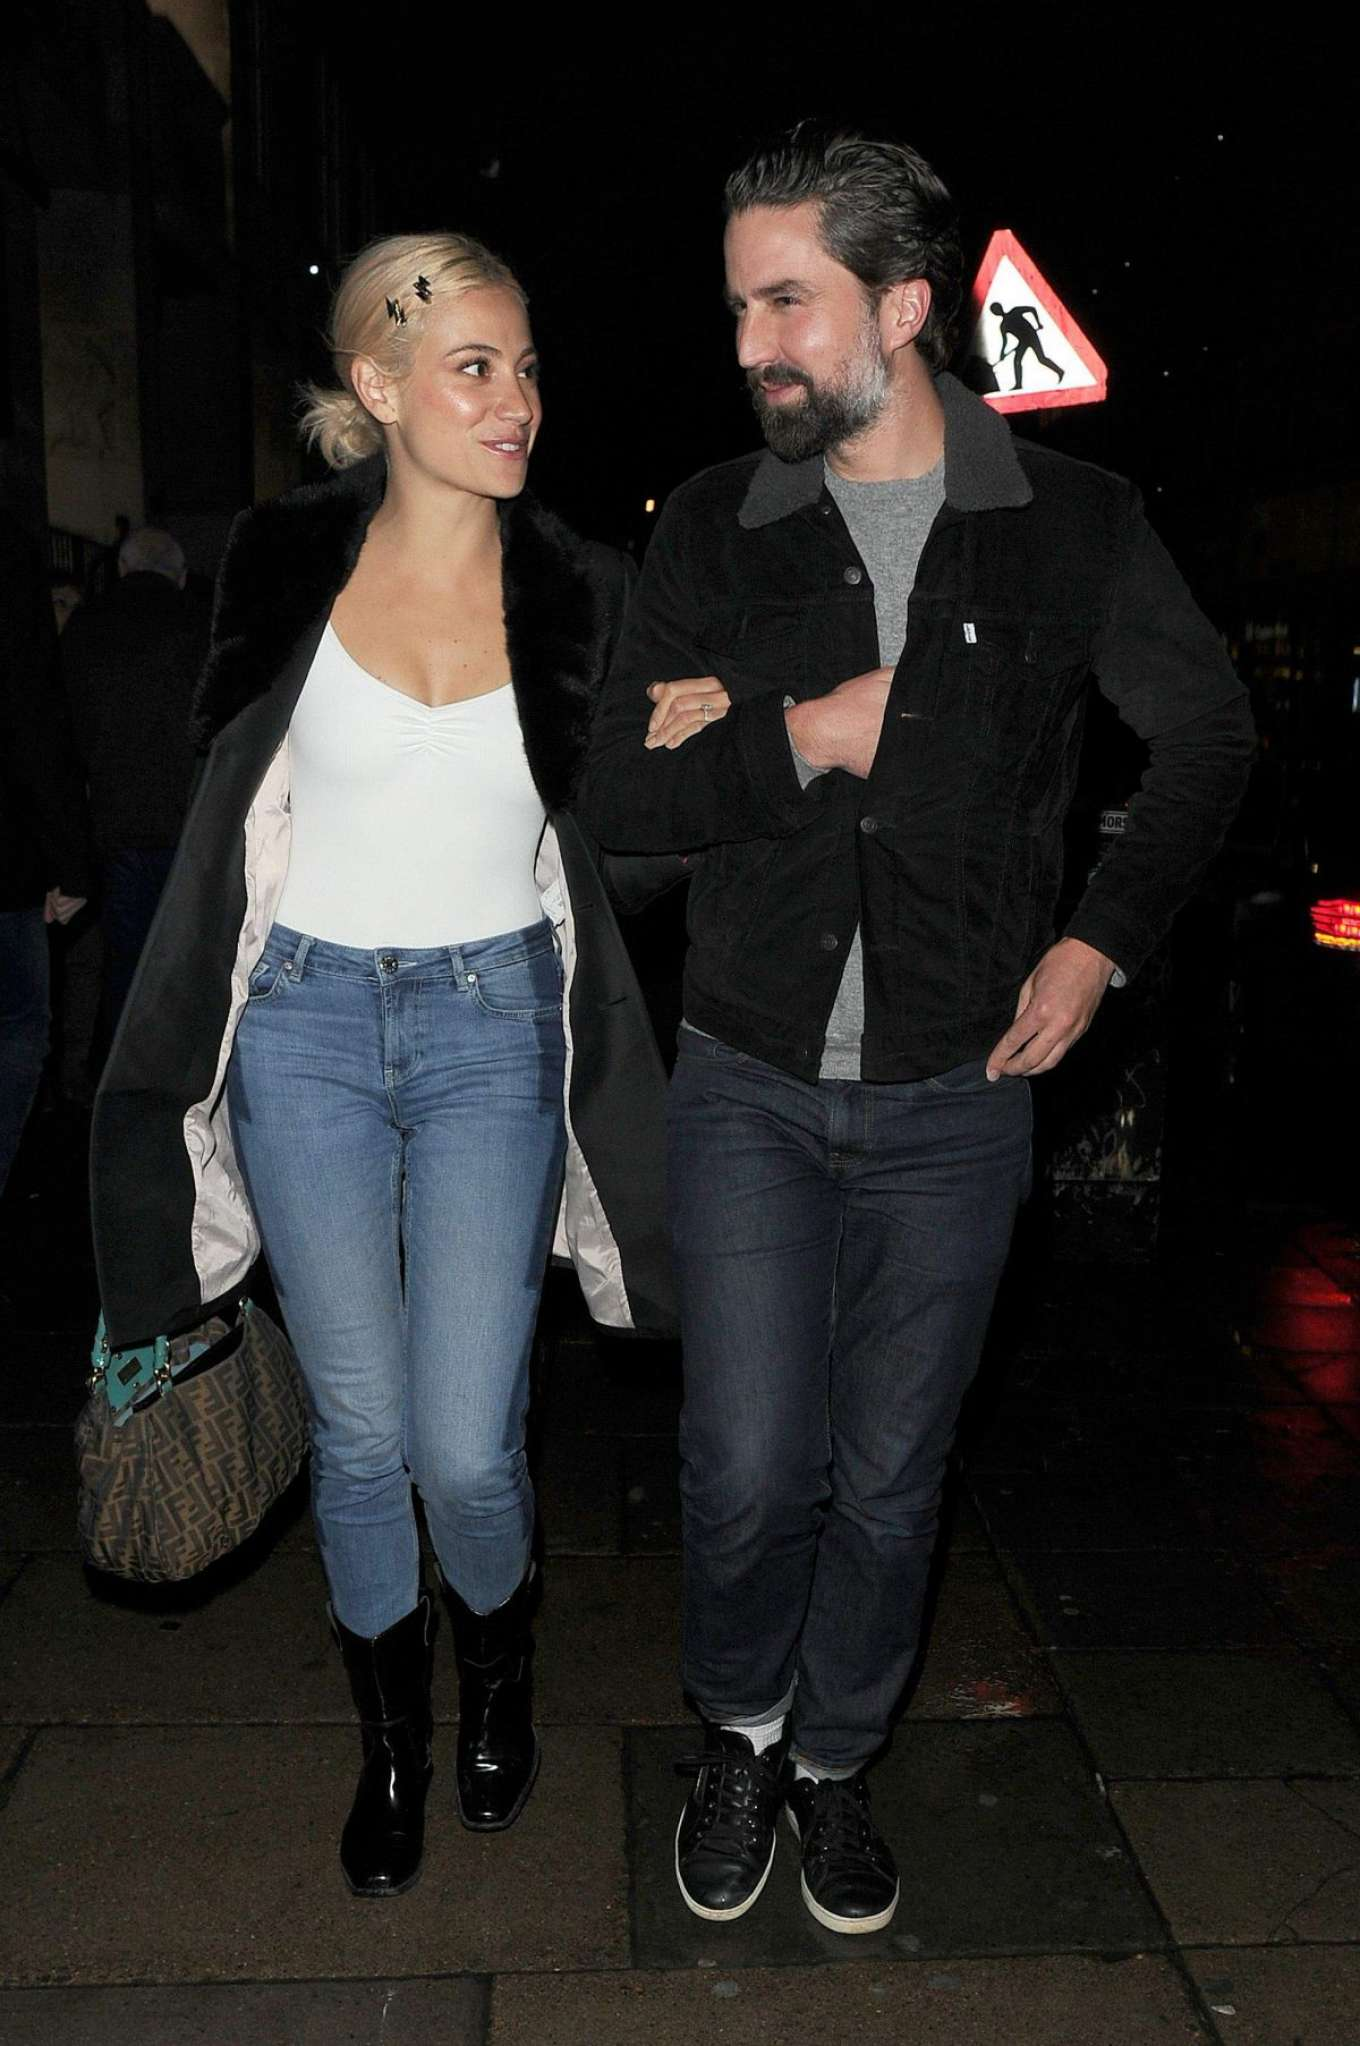 Pixie Lott and Jack Guinness - Leaving 'Chicago' The Musical in London